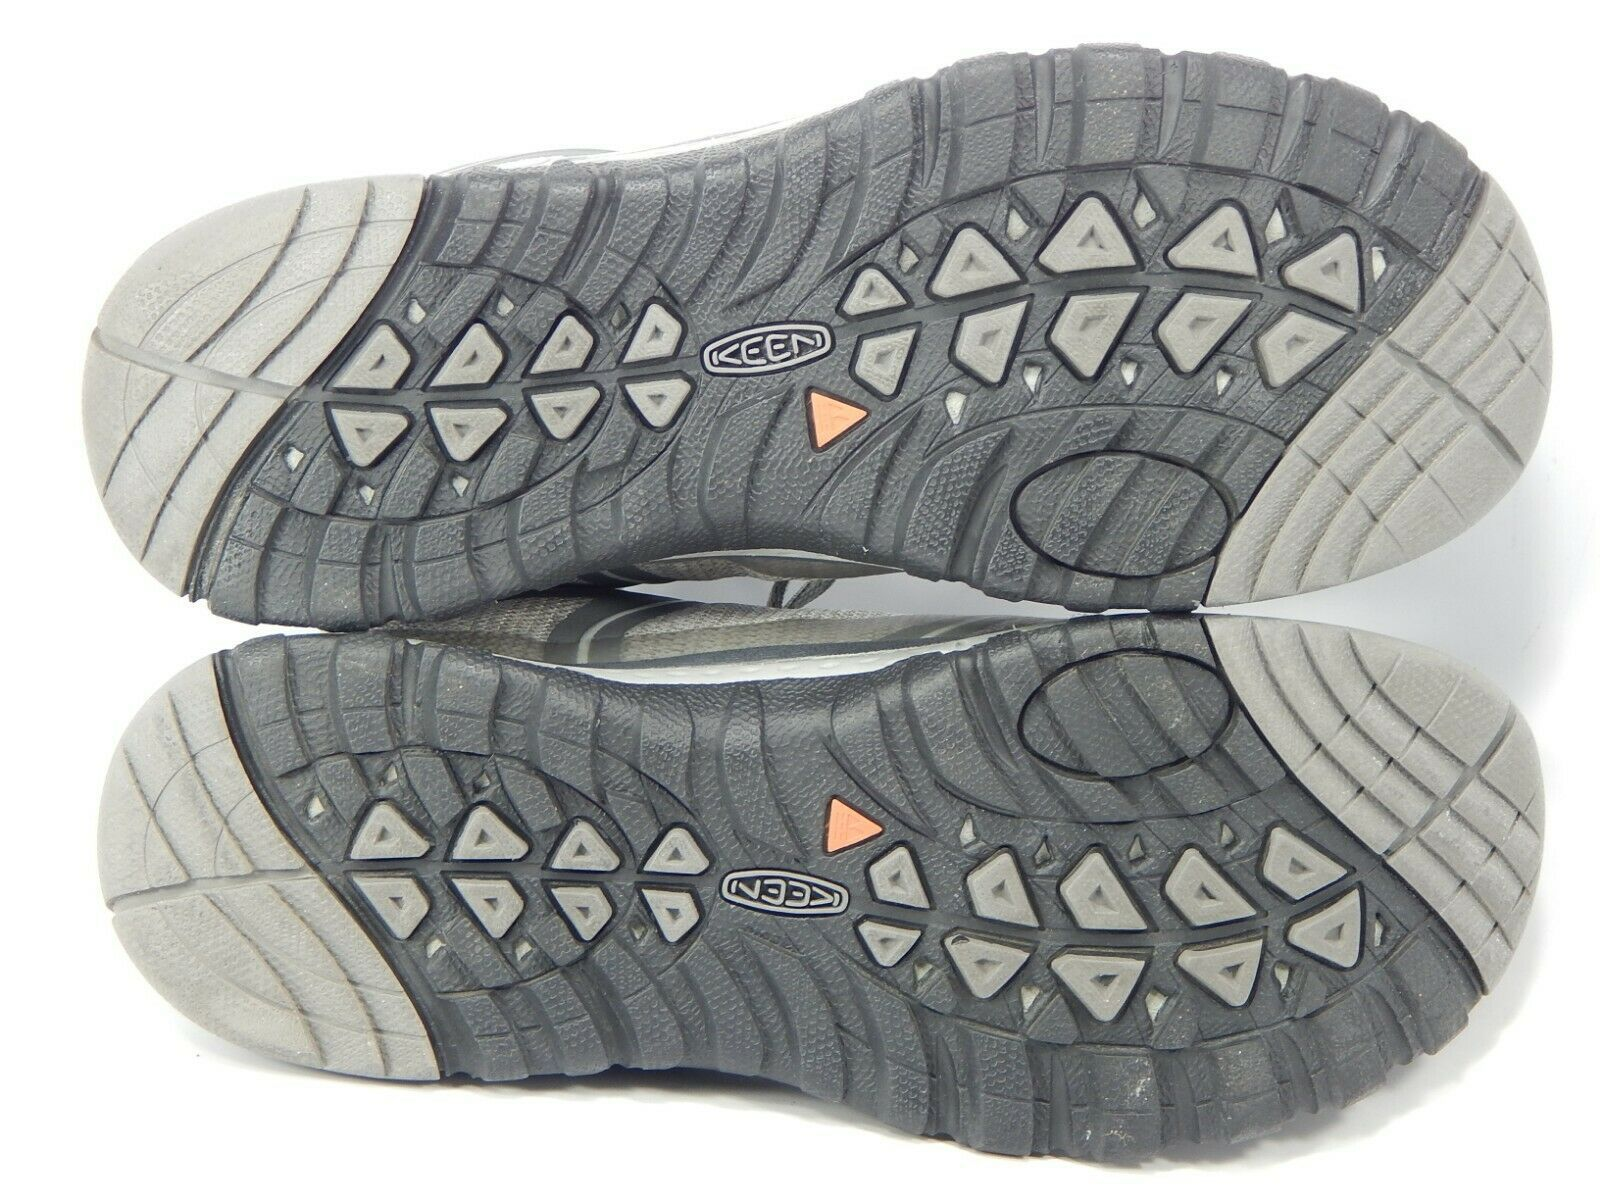 Keen Terradora Low Top Size 7.5 M (B) EU 38 Women's WP Hiking Shoes Grey 1016505